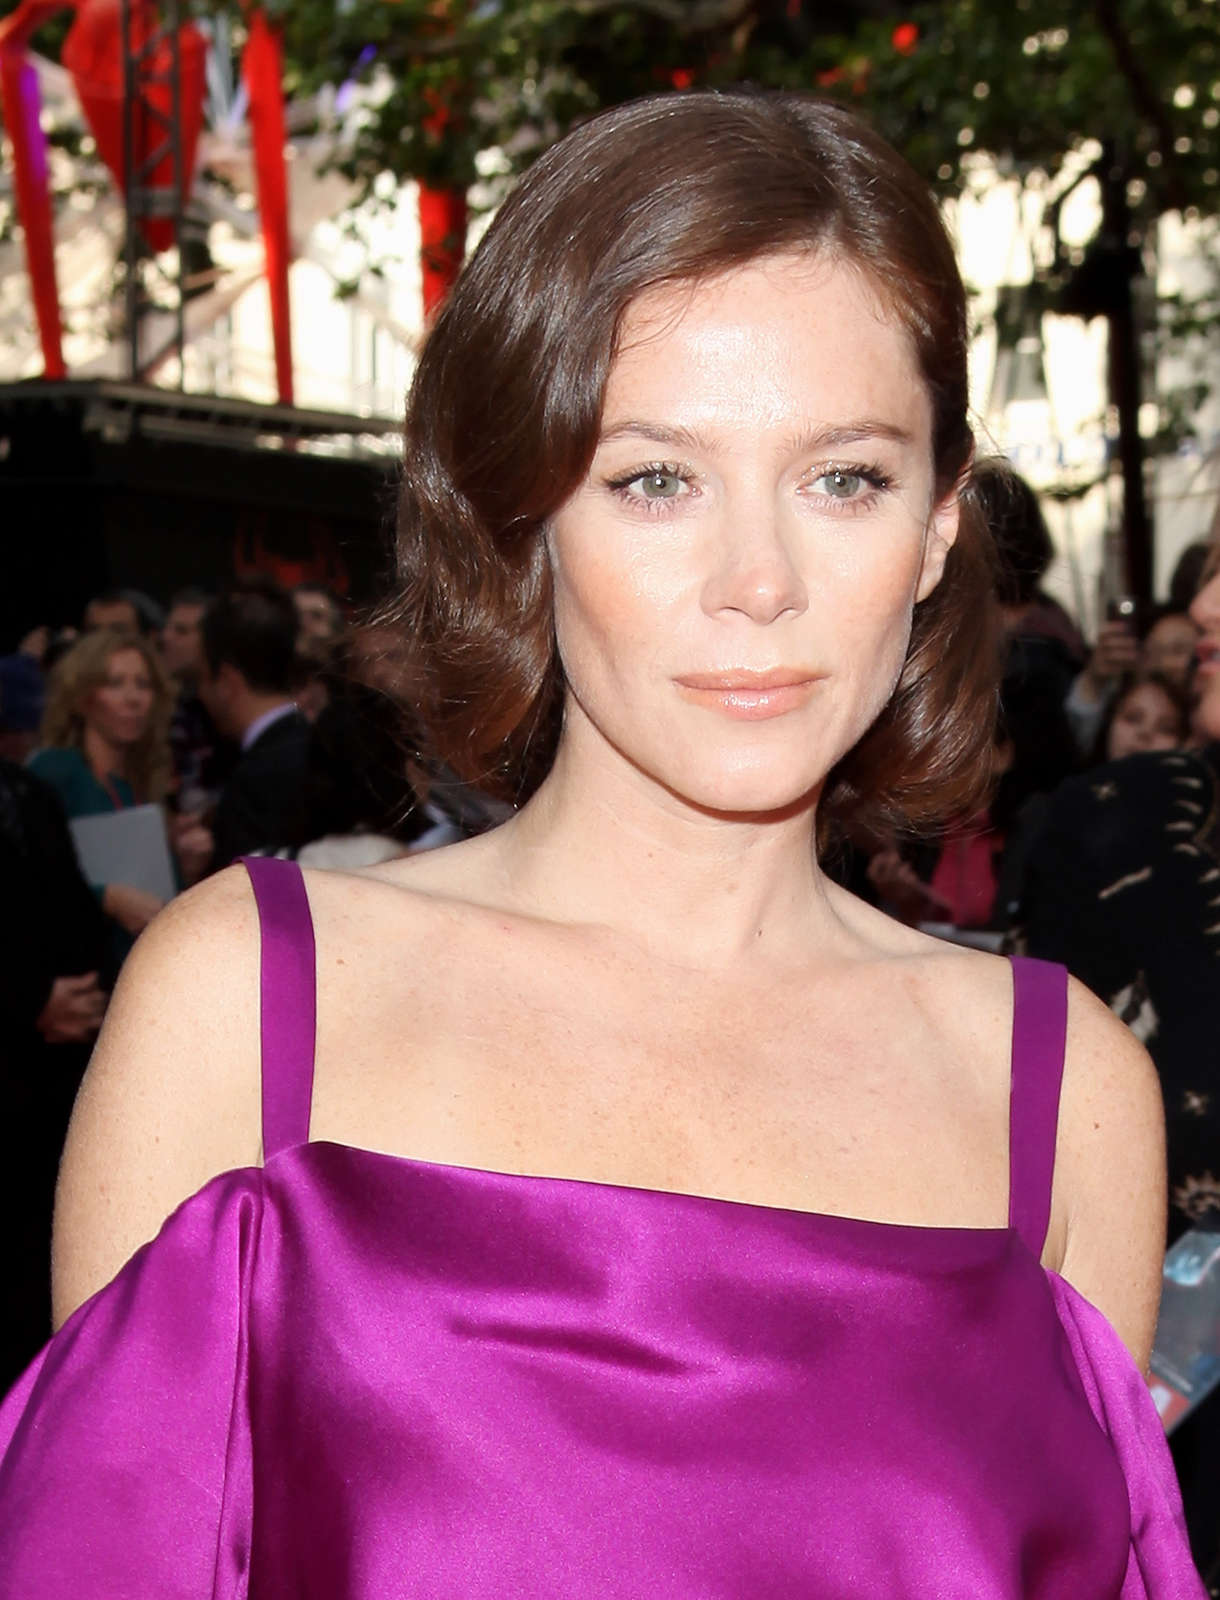 Anna Friel The Amazing Spider-Man premiere UK